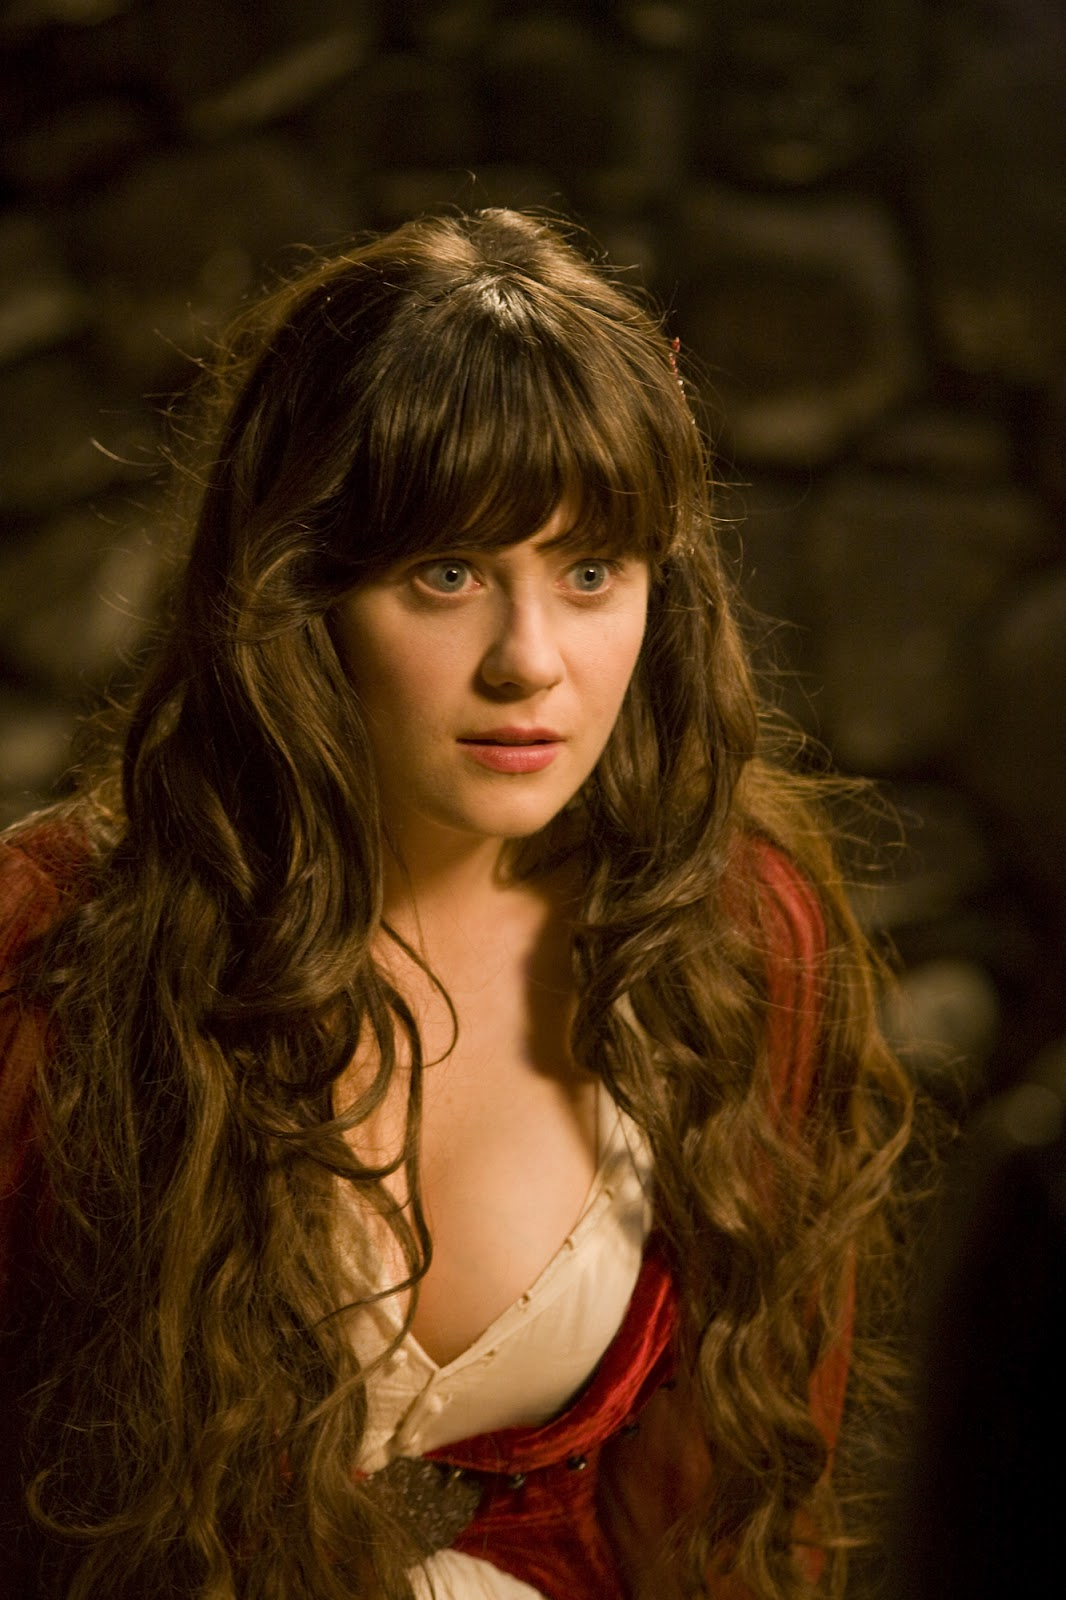 Zooey Deschanel Hot Facebook